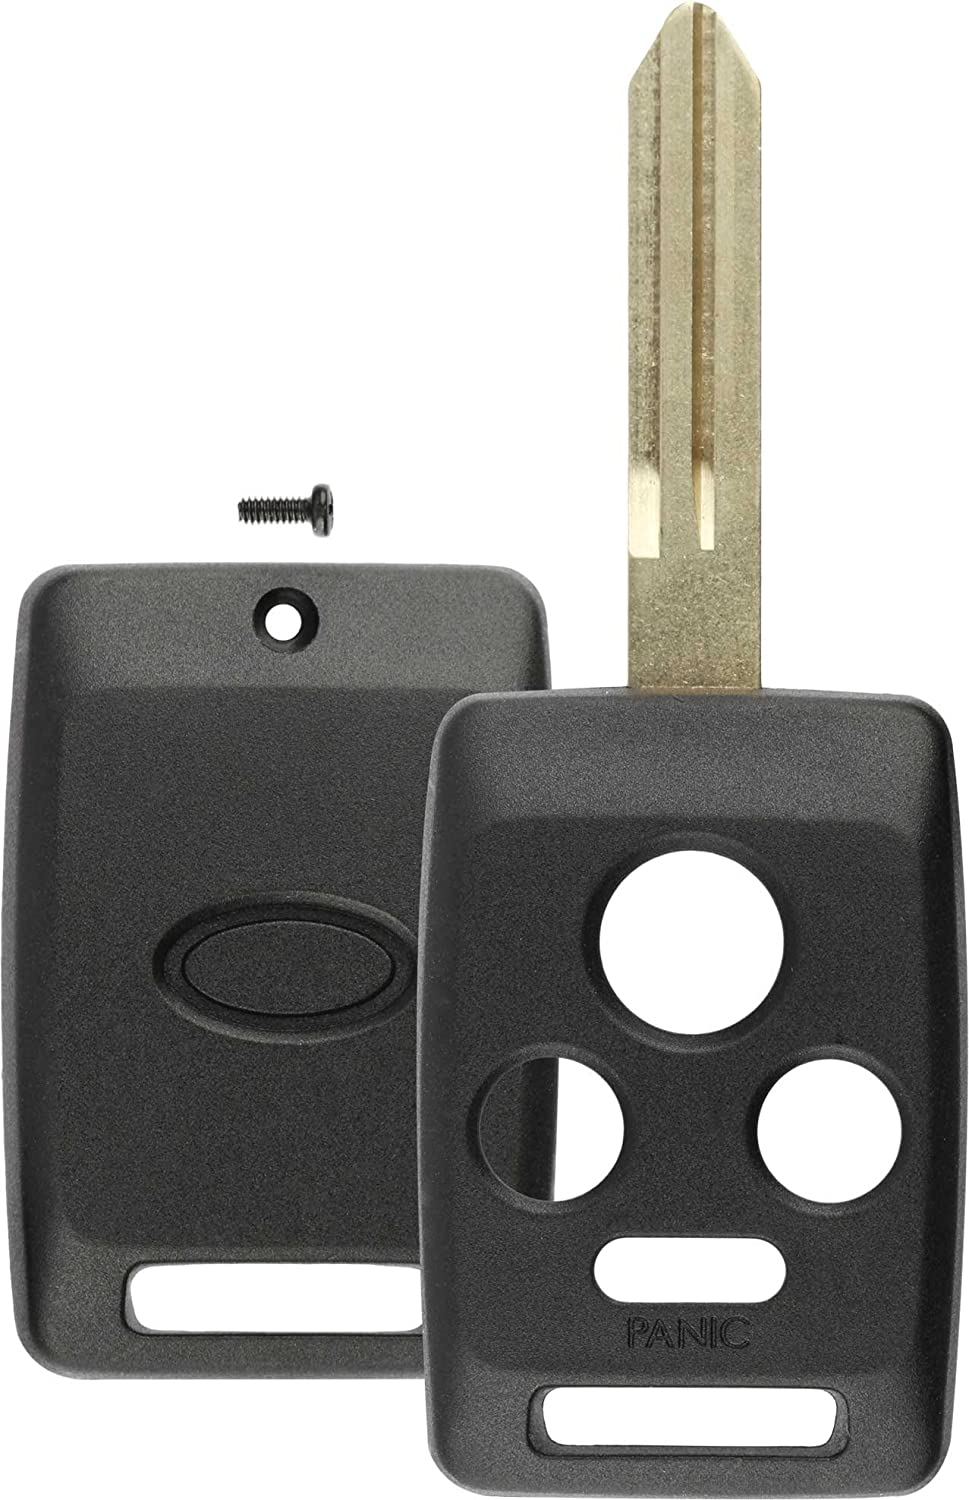 Discount Keyless Remote Entry Uncut Car Key Fob Replacement Case Shell Button Pad For Subaru Legacy CWTWBU745